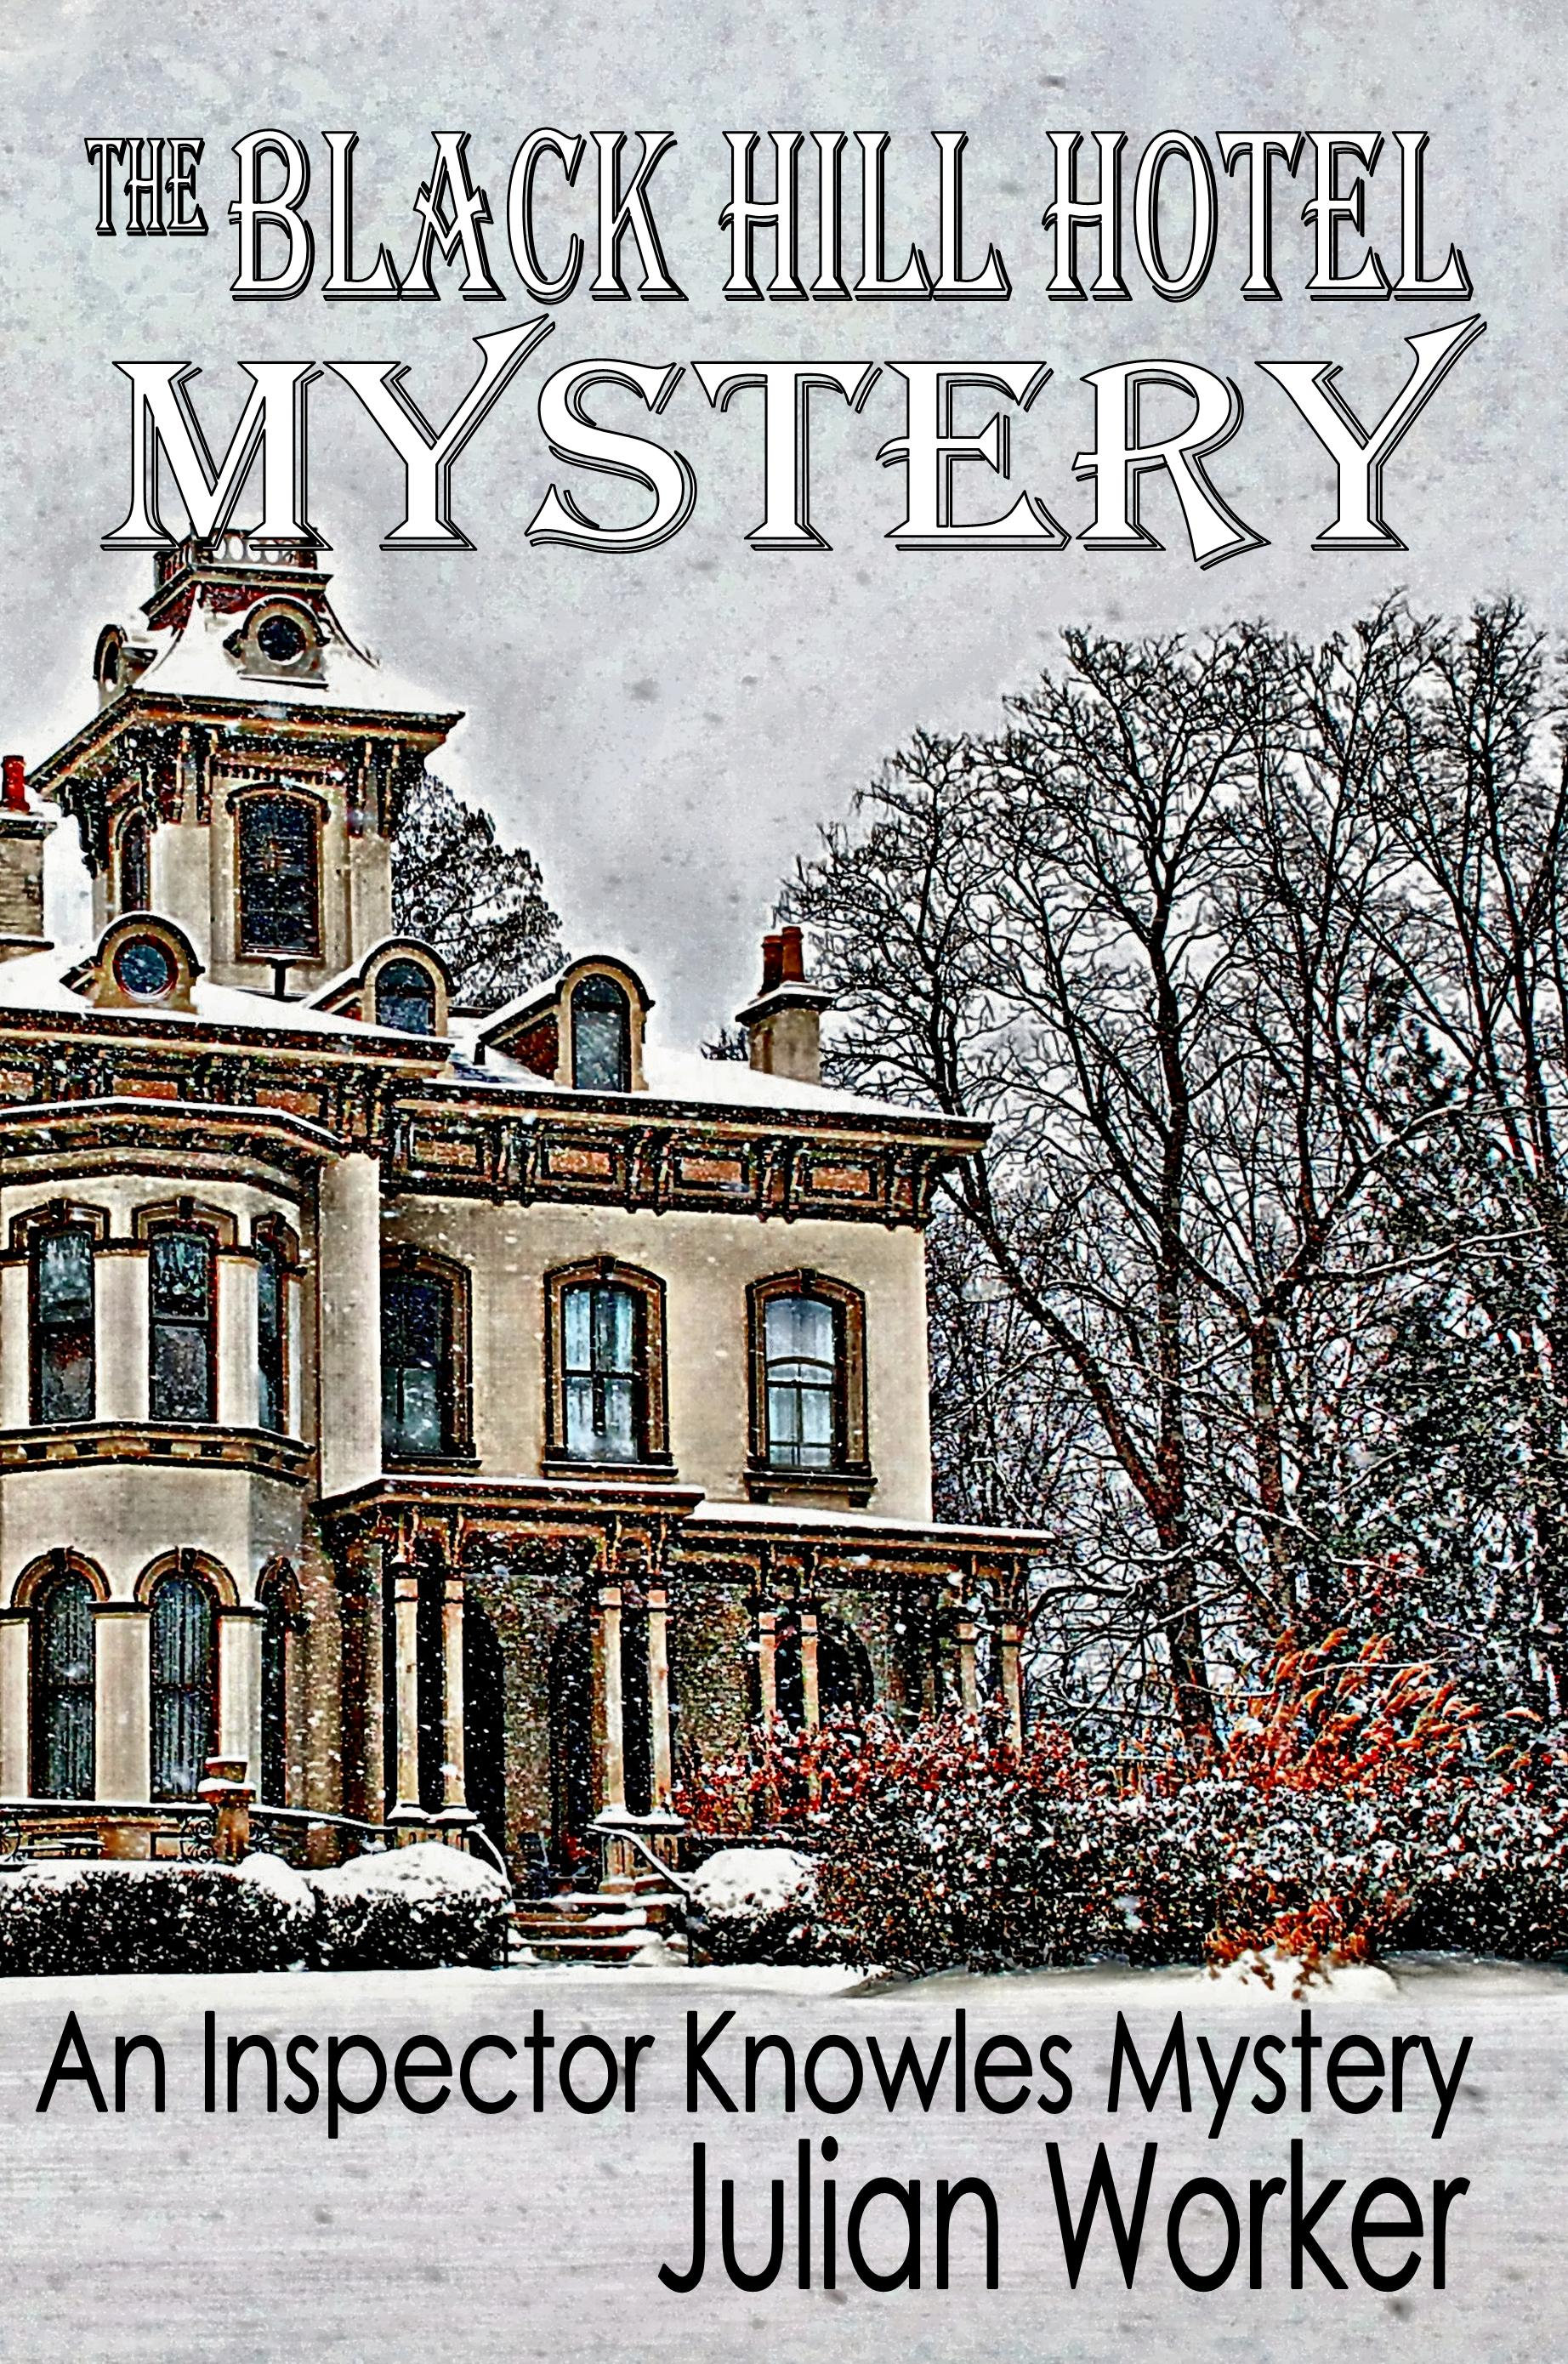 The Black Hill Hotel Mystery – 68